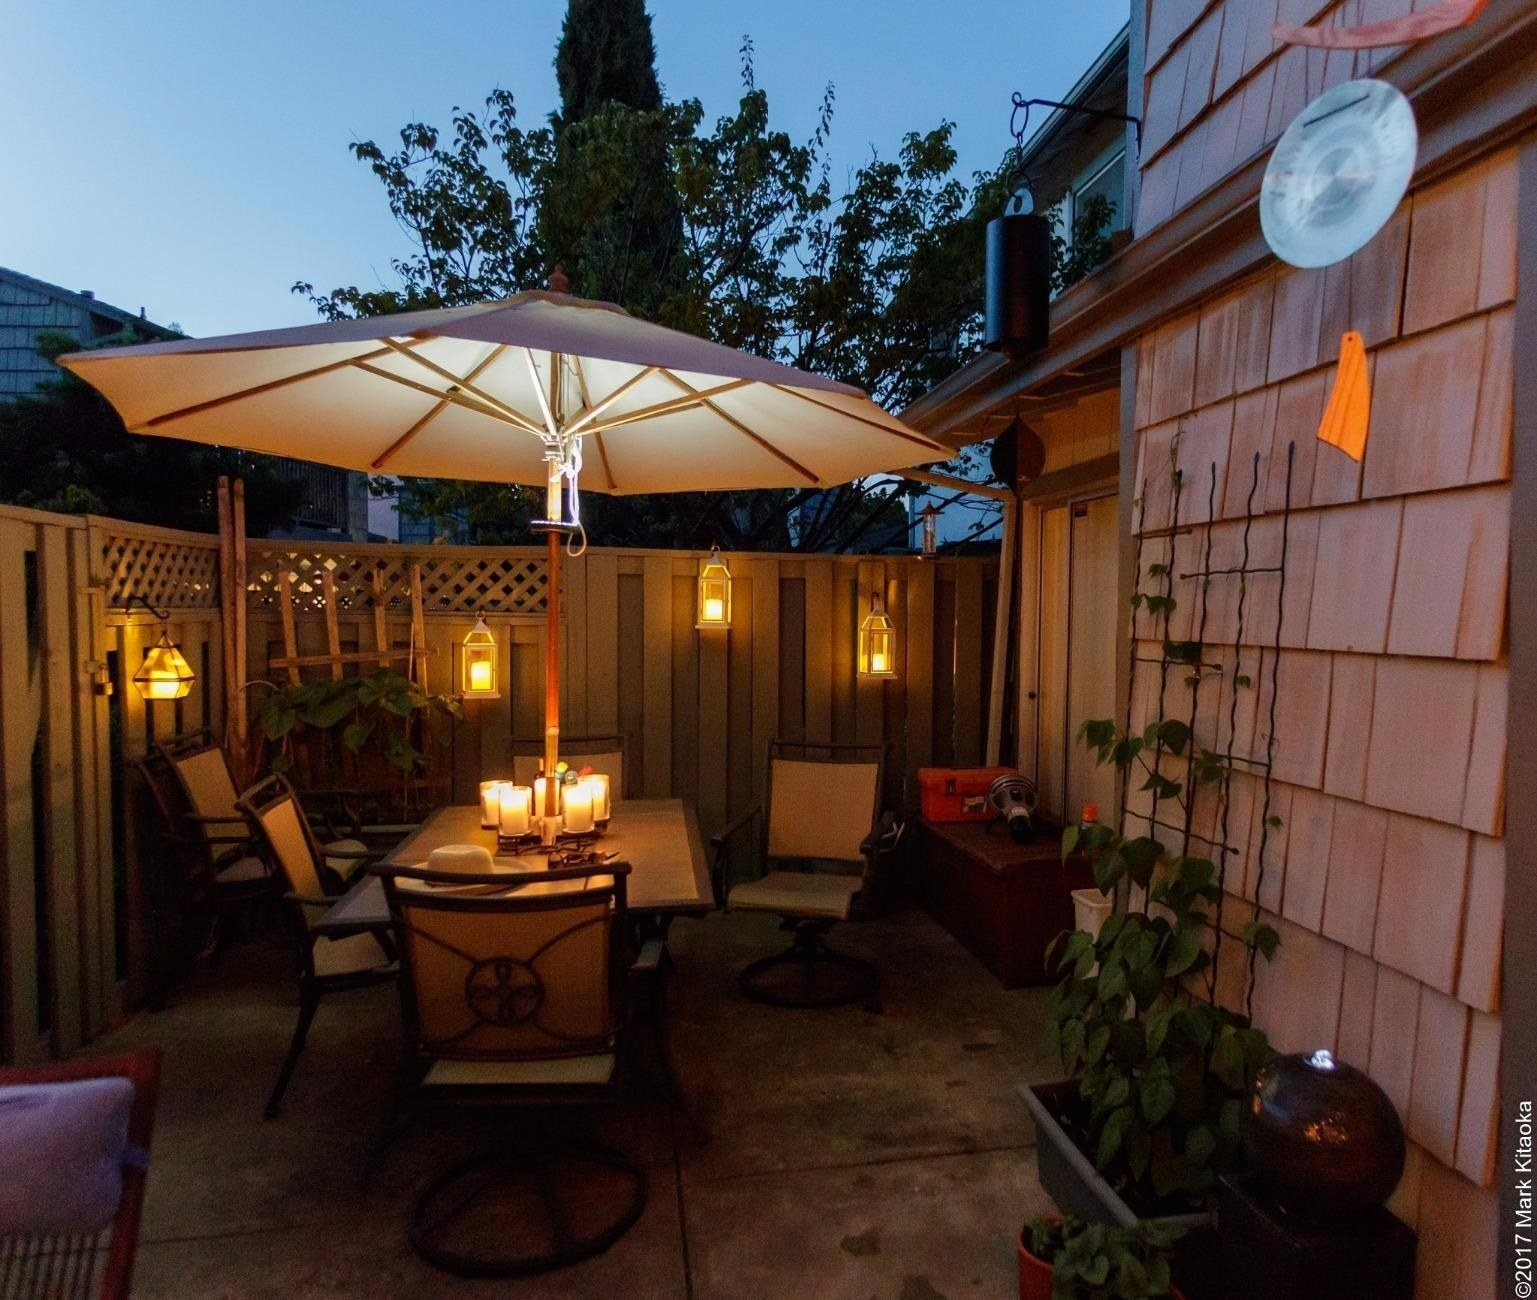 An outdoor patio bright with light from the umbrella patio light.